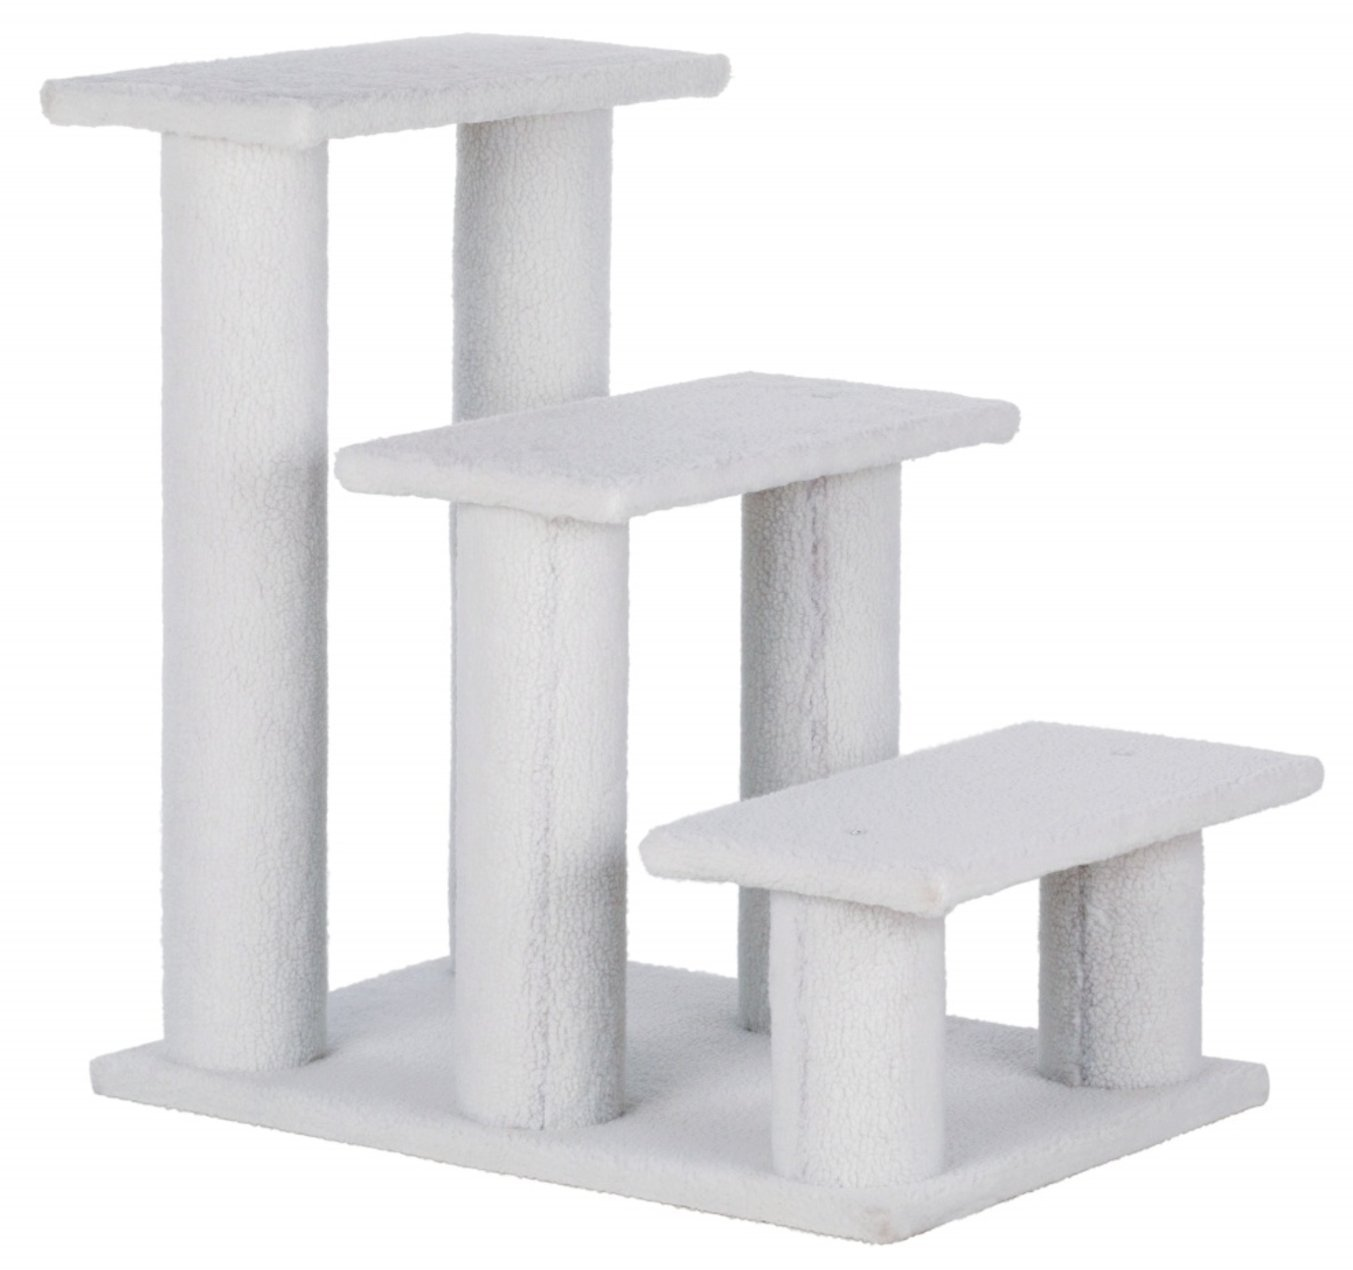 Trixie Pet Products Stairs, White by Trixie